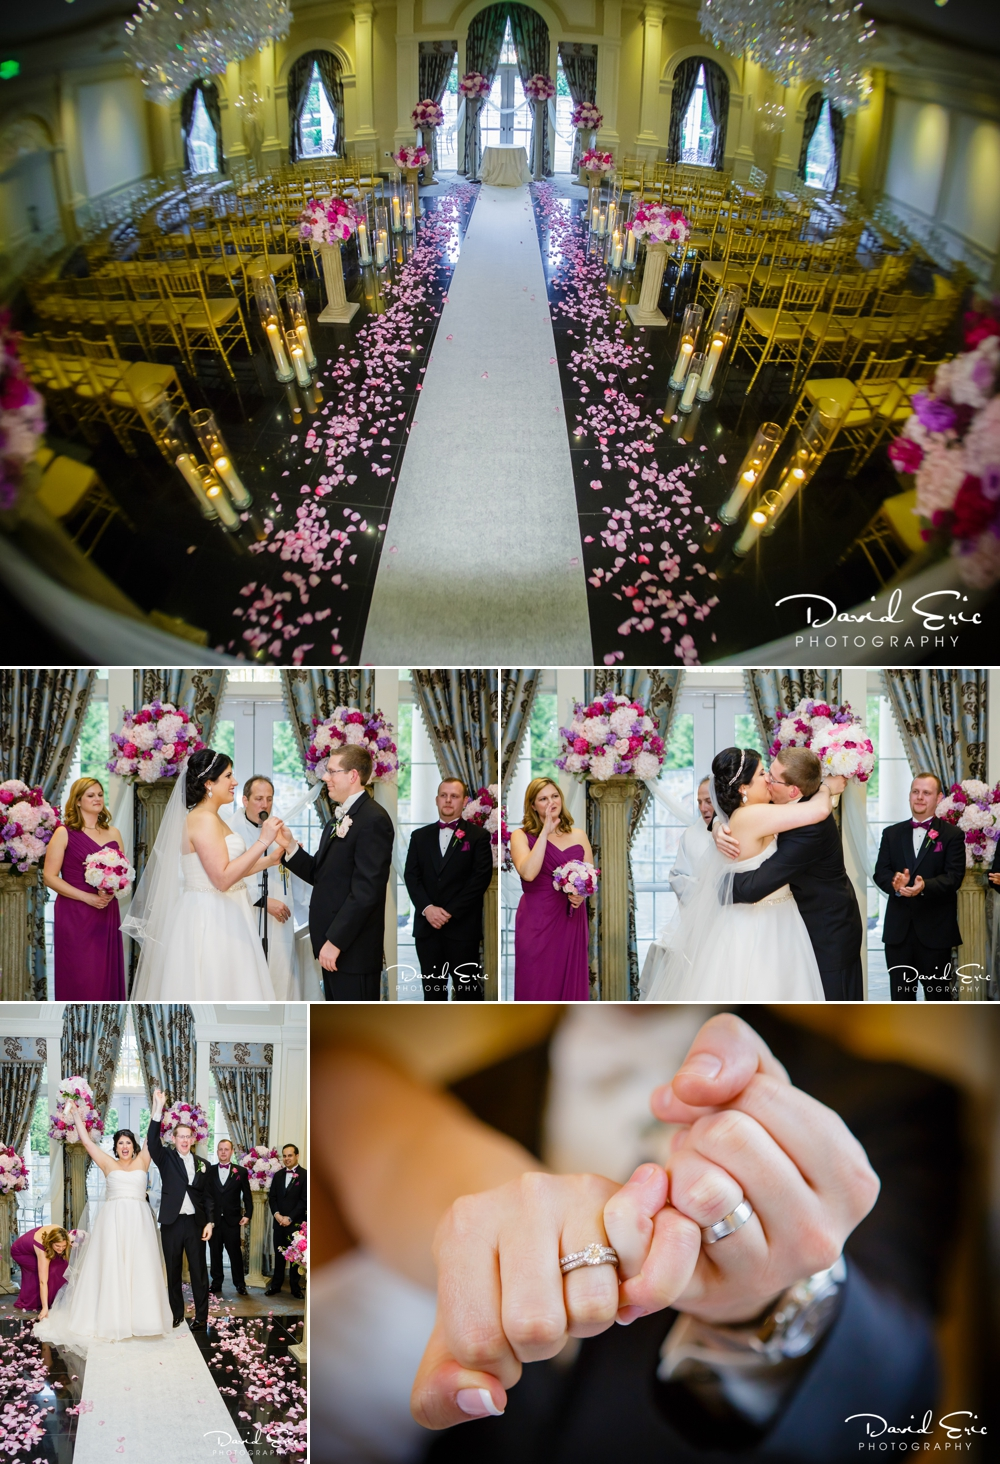 Wedding Ceremony at the Rockleigh Country Club Rockleigh New Jersey